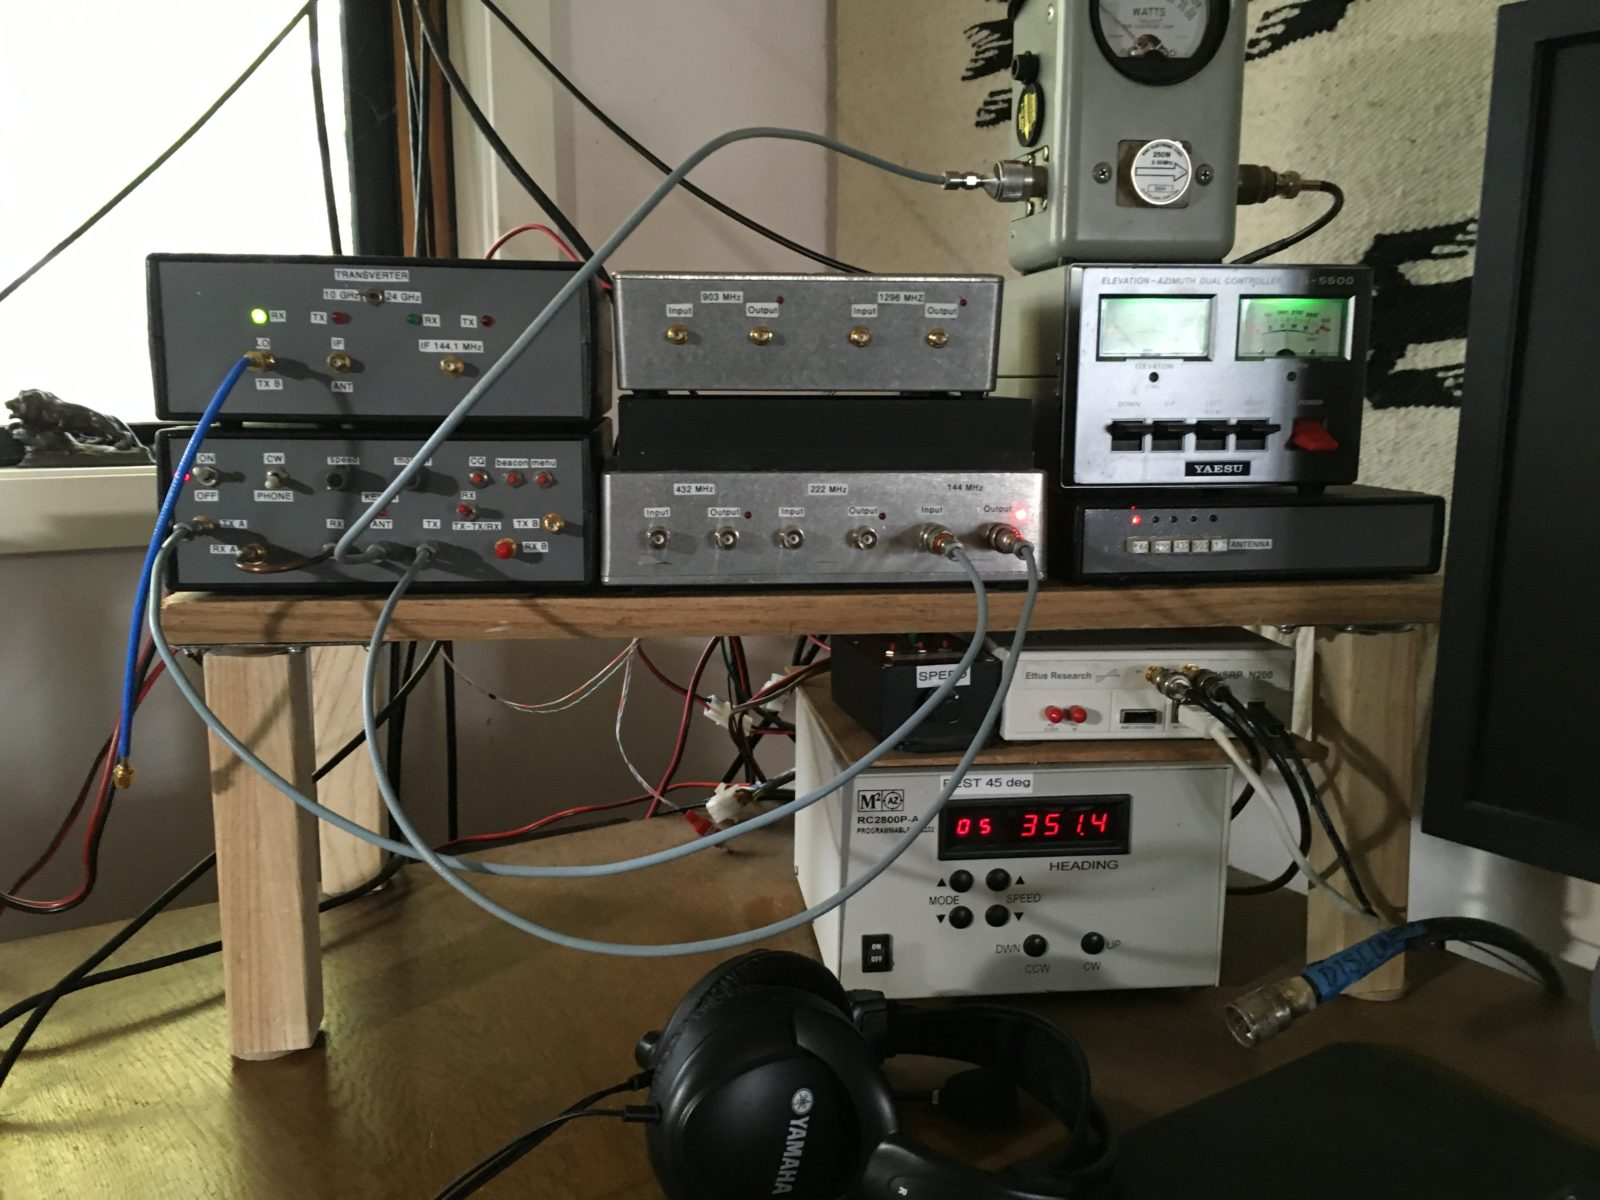 SDR Station: HF to 24 GHz – AMATEUR RADIO – HOMEBREW SDR